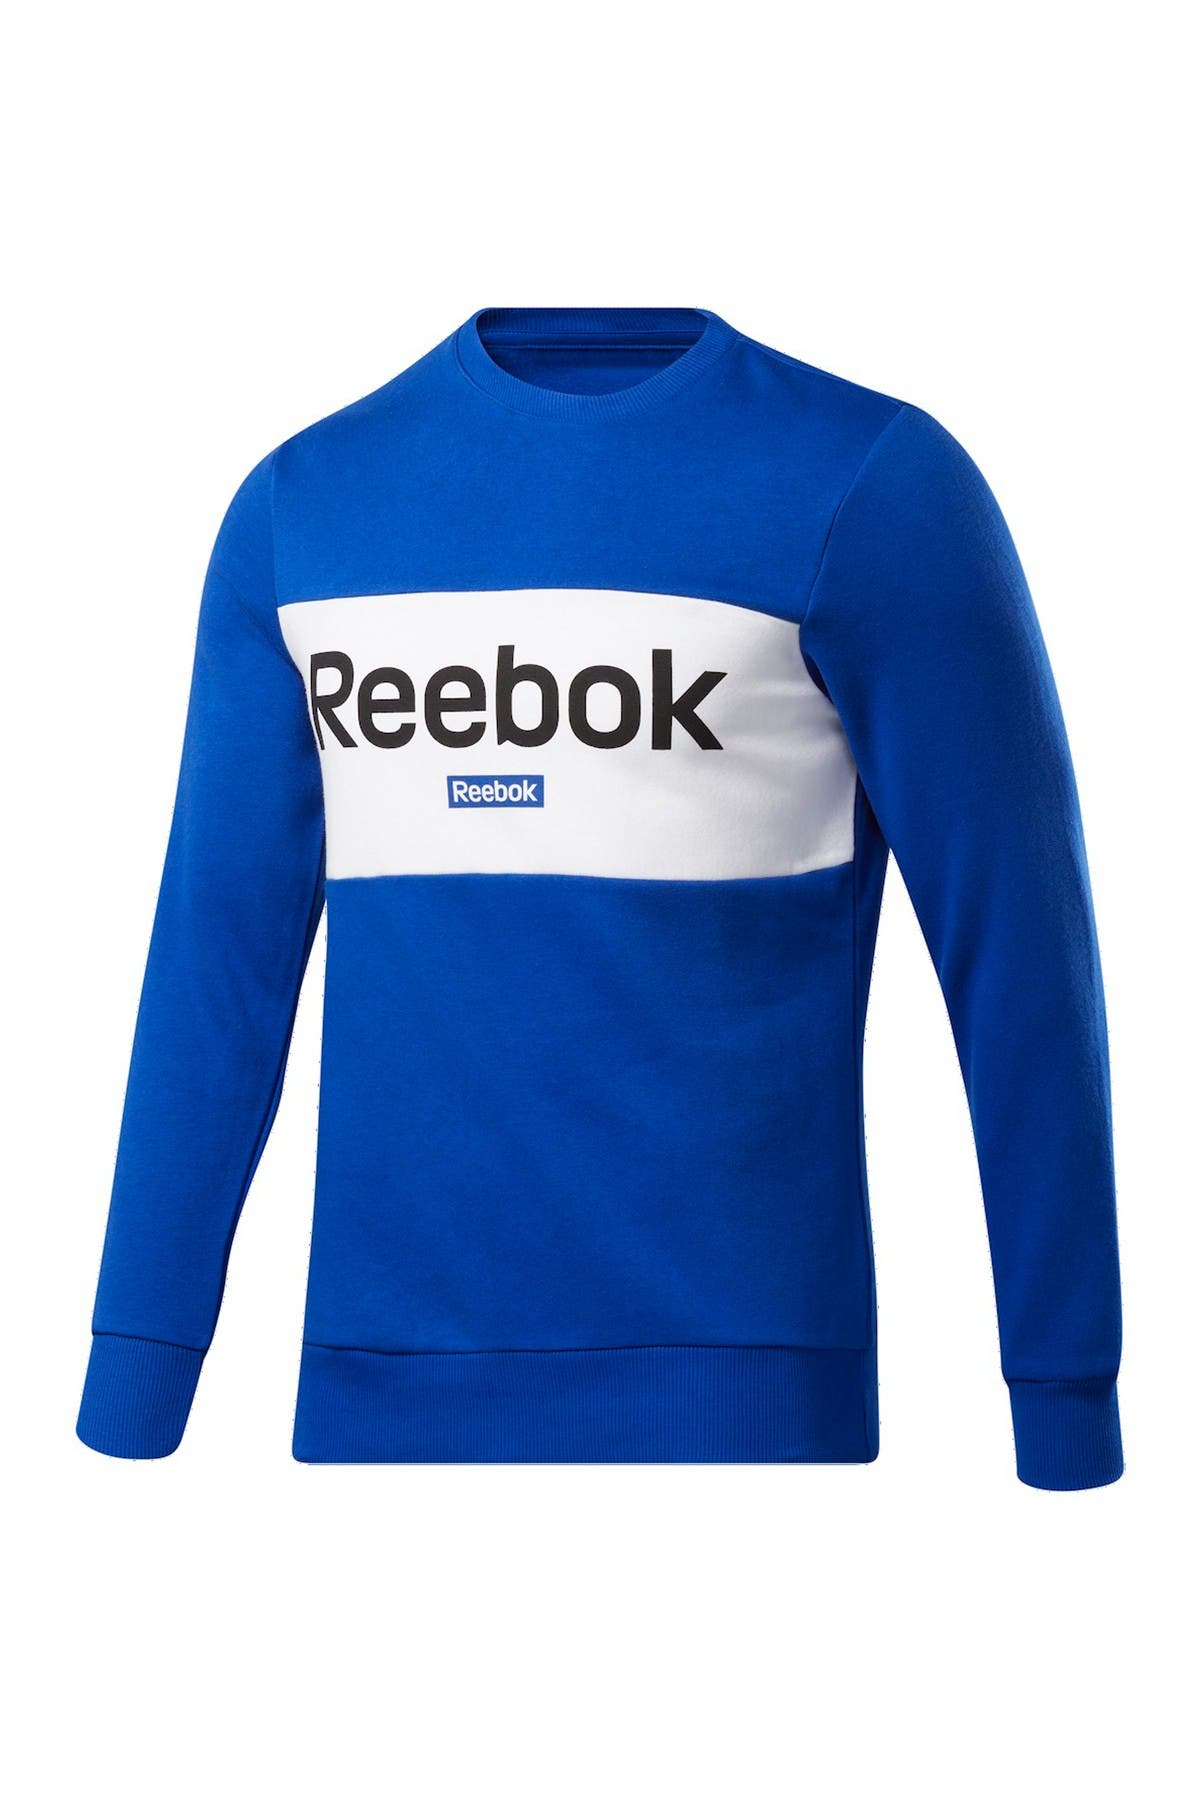 Image of Reebok Linear Logo French Terry Pullover